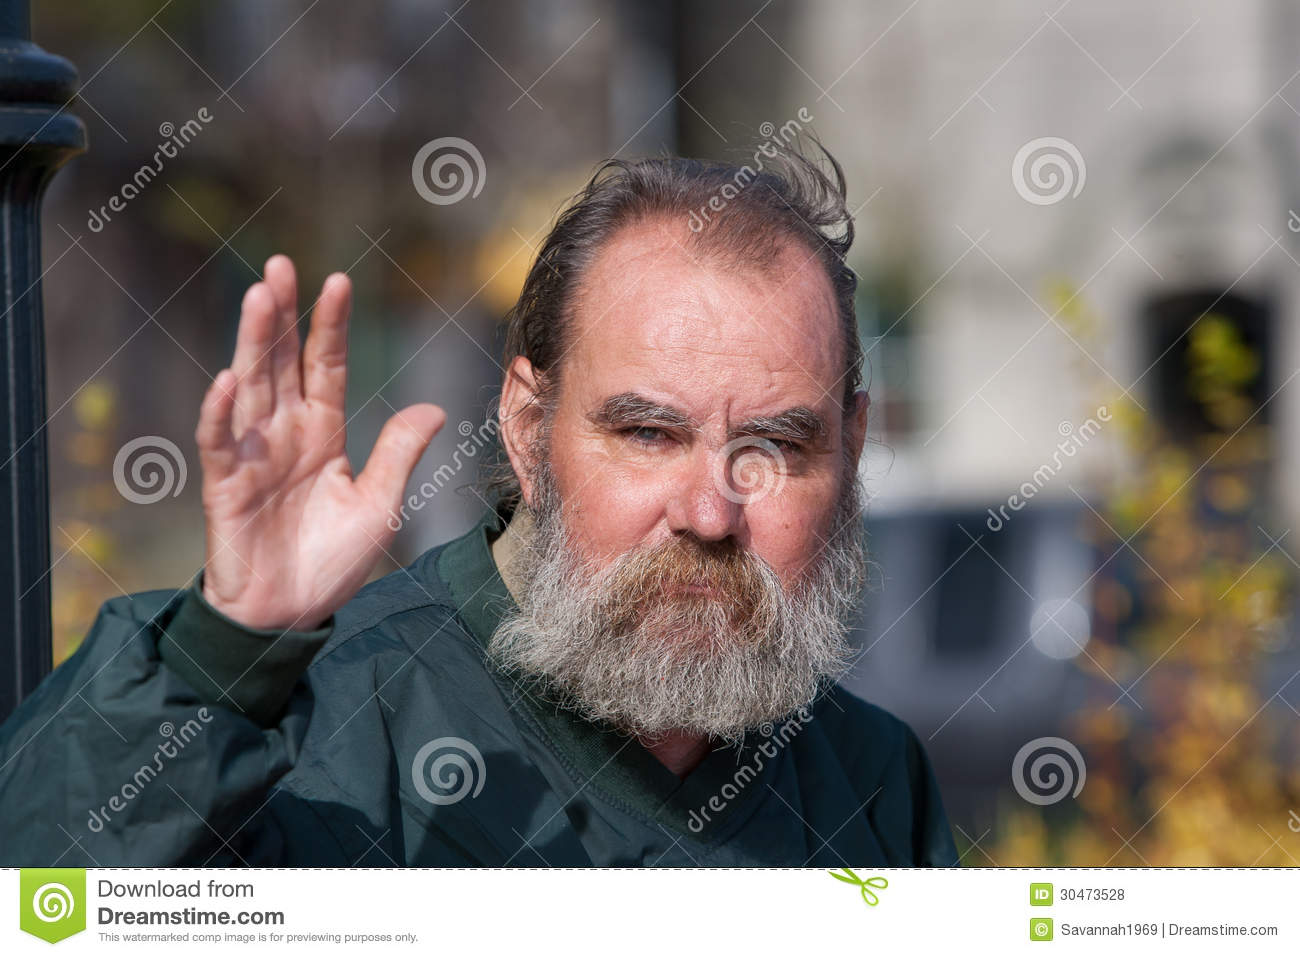 Homeless Man Waving Royalty Free Stock Photos   Image  30473528